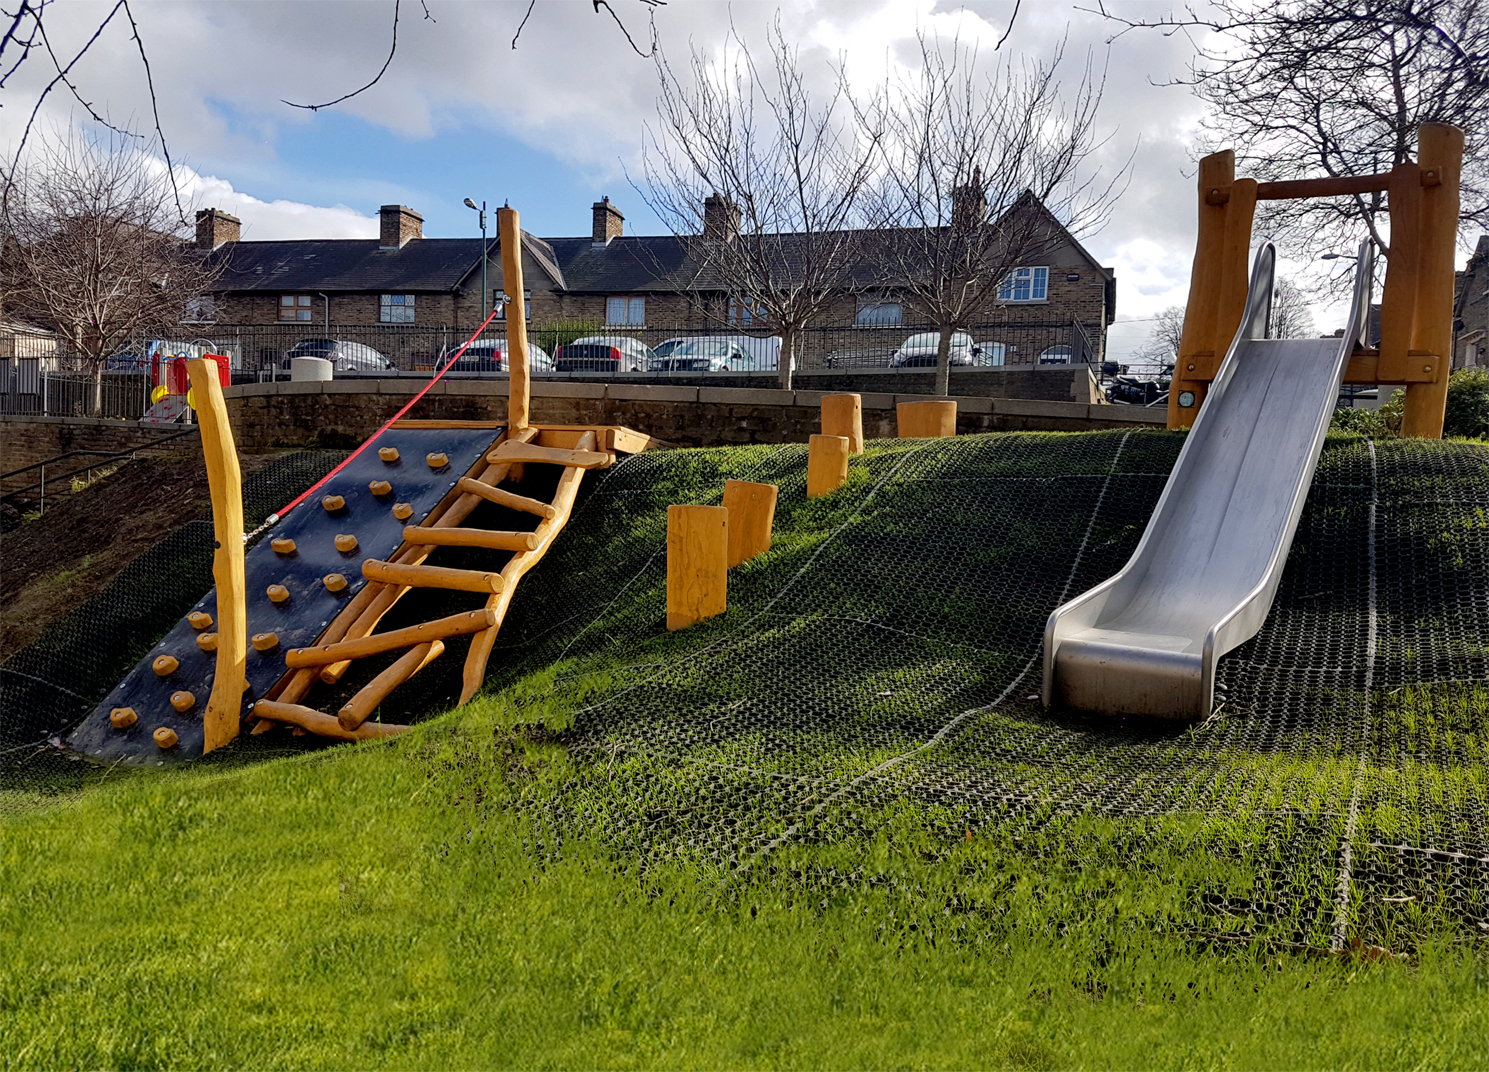 New Playground for Mount Brown in Dublin, located within the square.